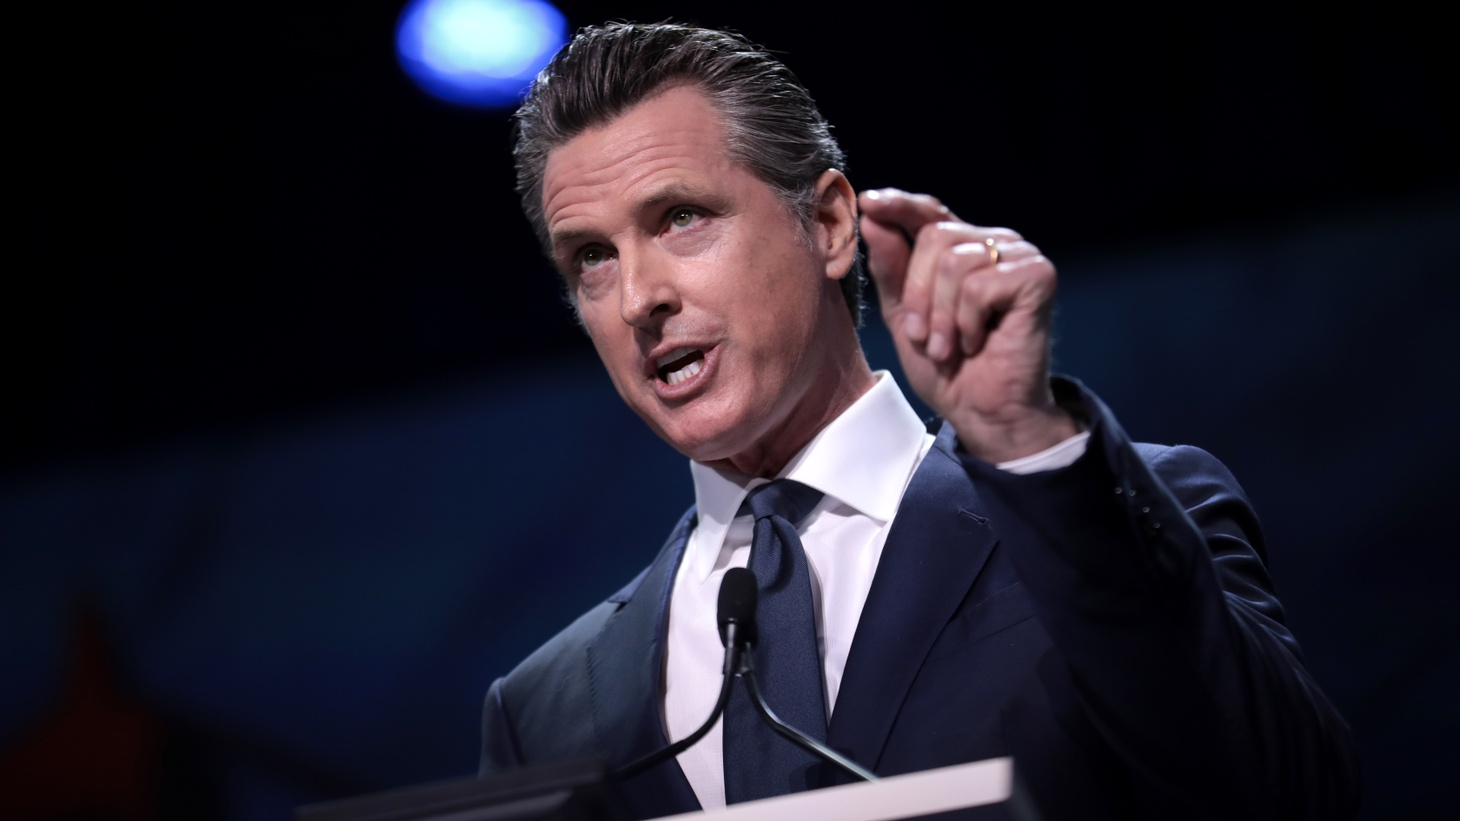 COVID-19 cases are surging in California, and some critics say California Governor Gavin Newsom reopened the economy too quickly. Newsom has since closed businesses like bars, gyms, and restaurant dining rooms again.